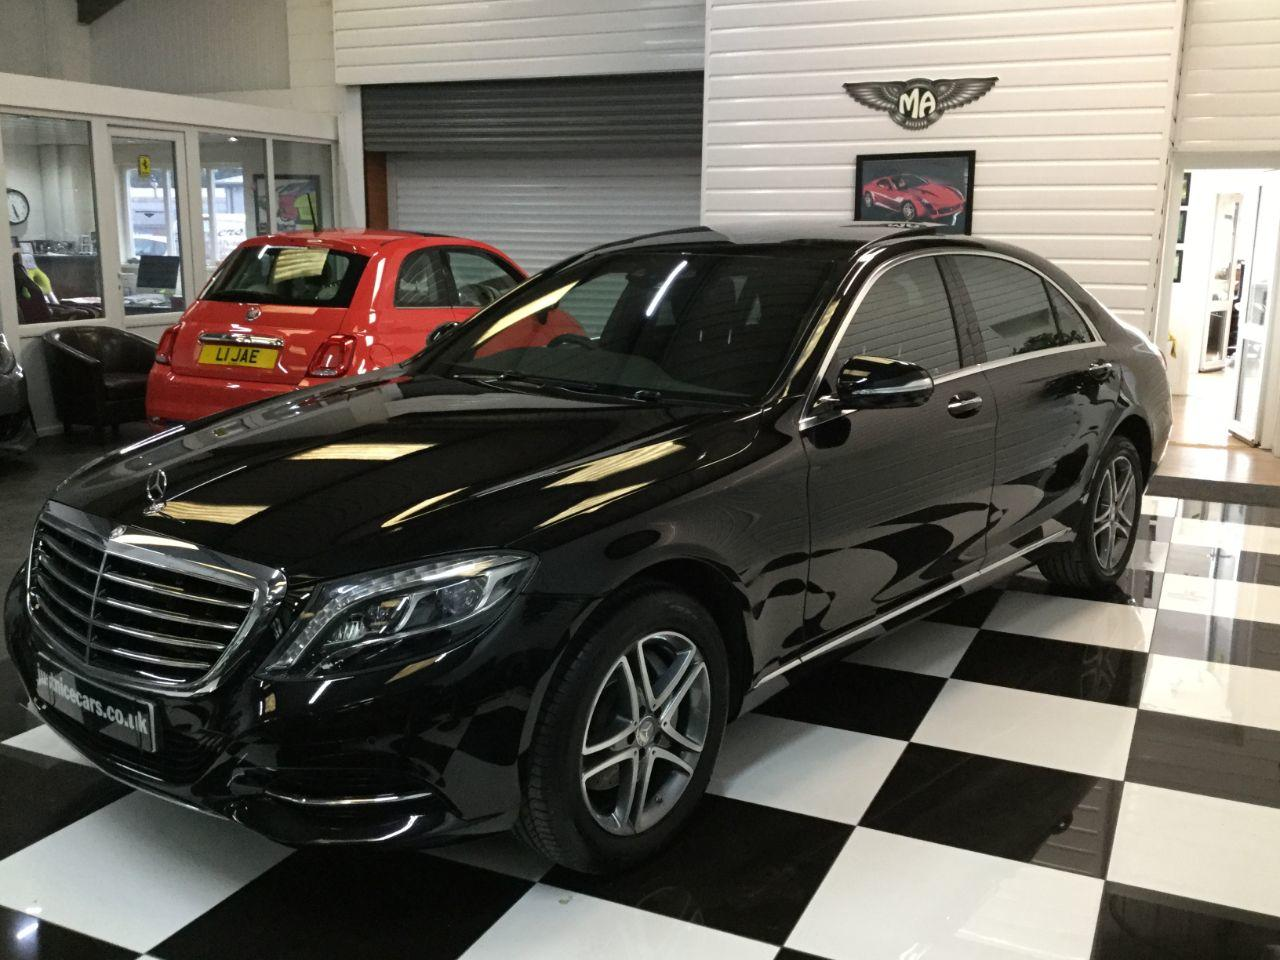 Mercedes-Benz S Class 3.5 S400L Hybrid SE Line 4dr Auto (Executive Rear Seat Pack) Saloon Hybrid Obsidian Black Metallic